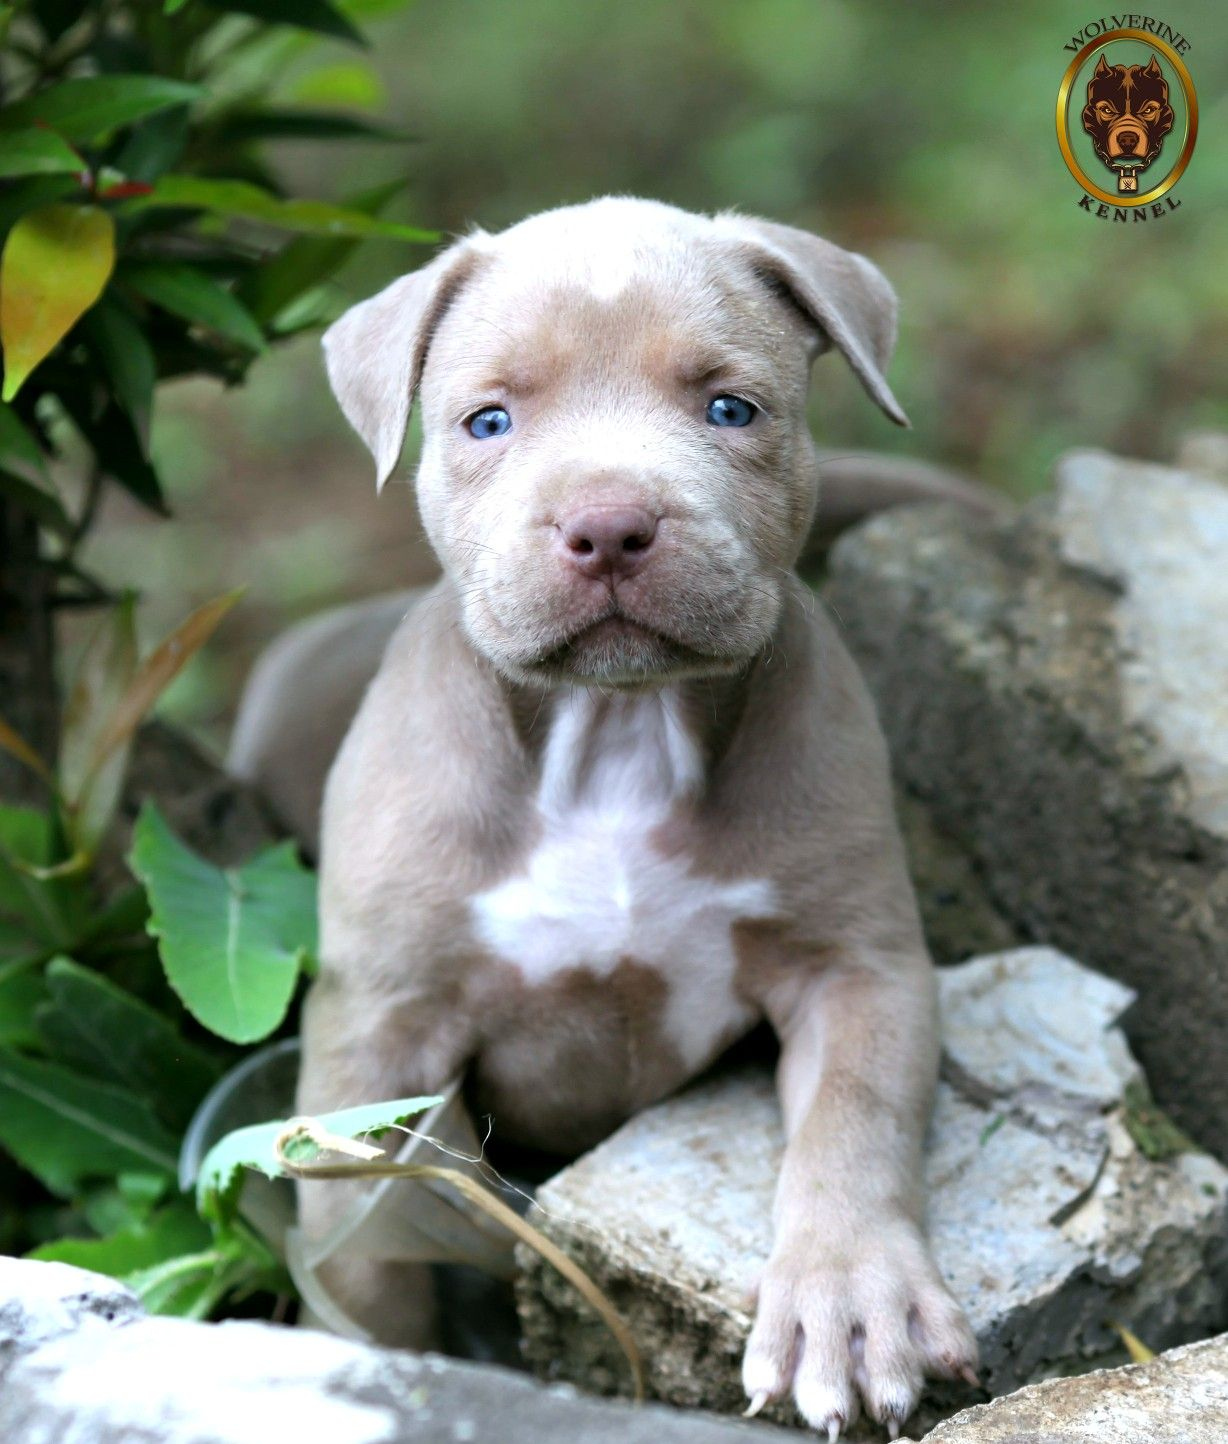 Pin Oleh Wolverine Kennel Di Champagne Pitbull Puppies